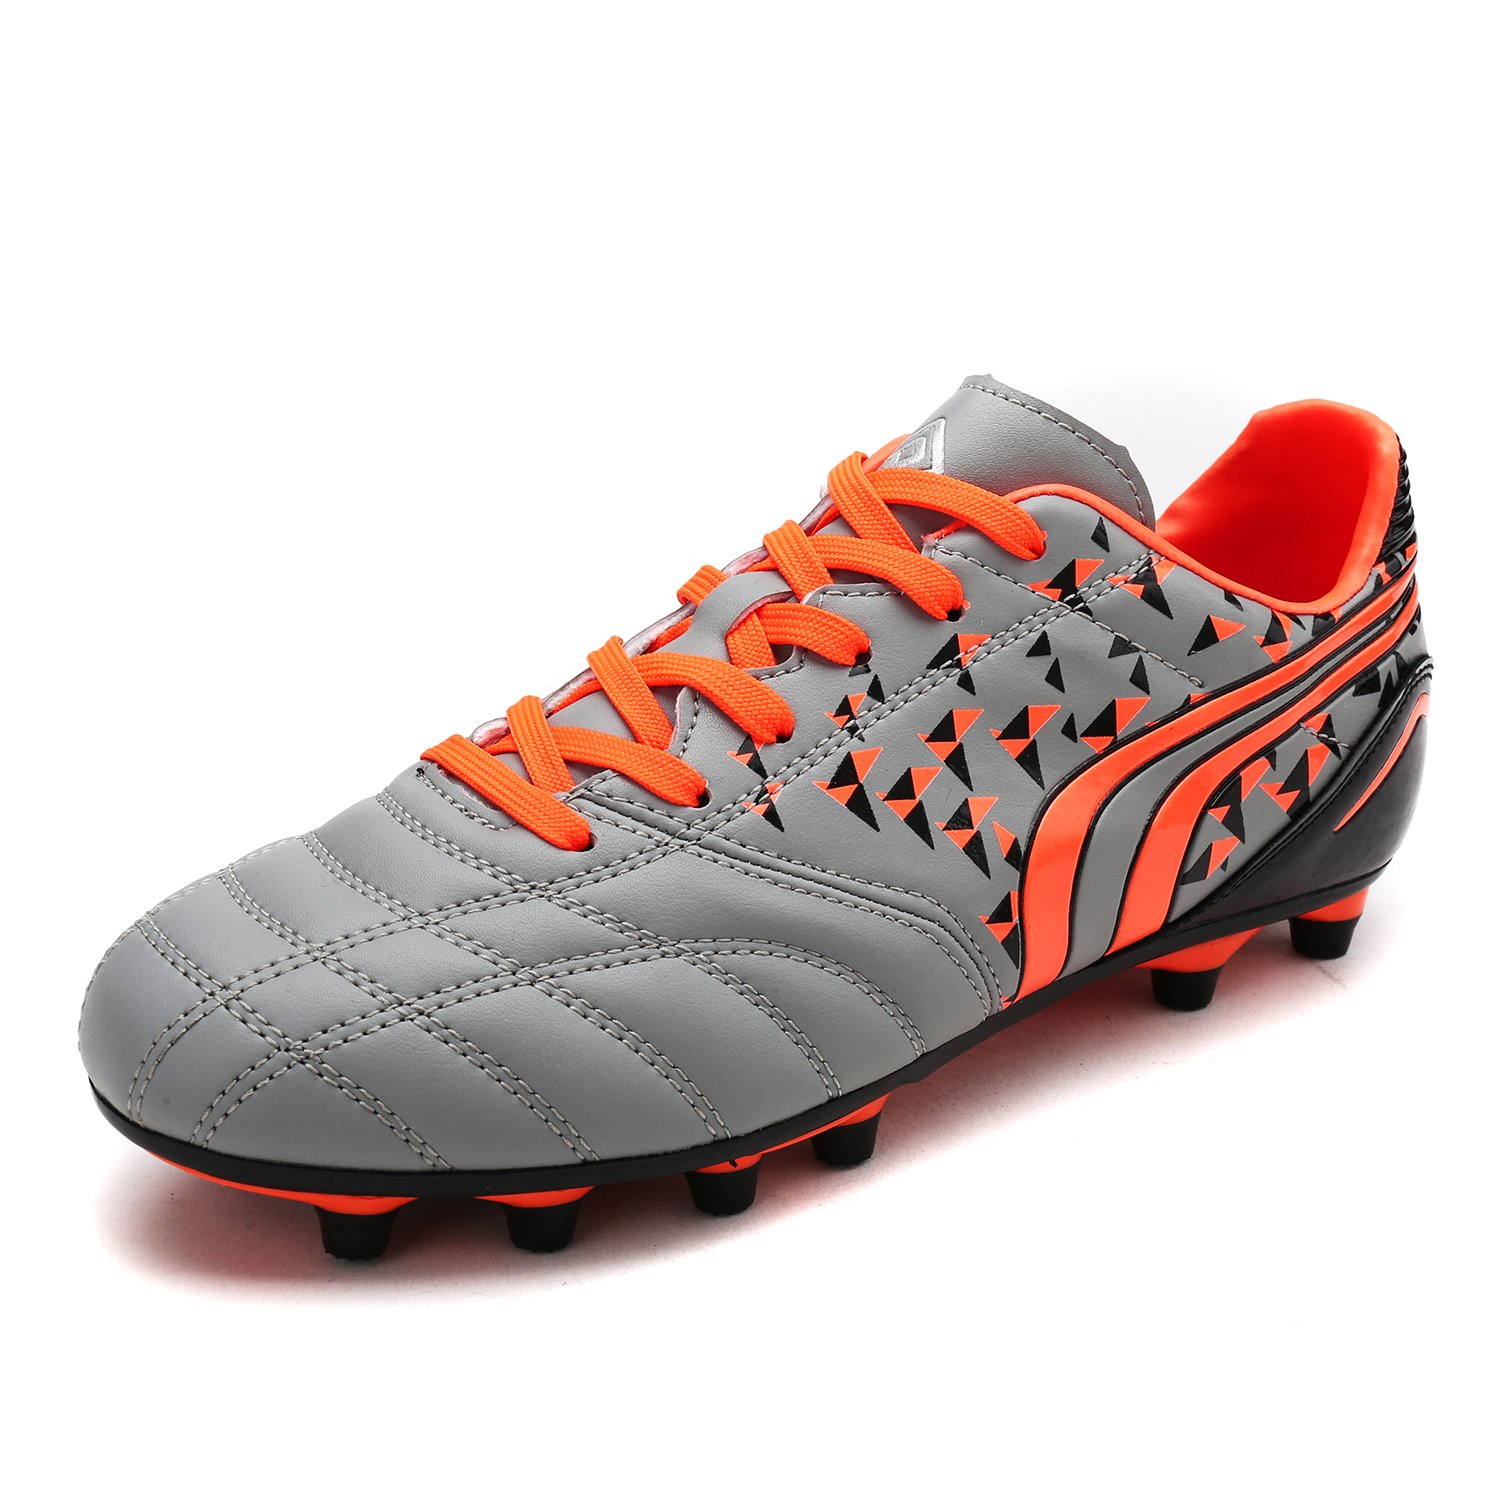 DREAM PAIRS メンズ B01NA7OTFX 12 D(M) US|Grey Orange Black Grey Orange Black 12 D(M) US